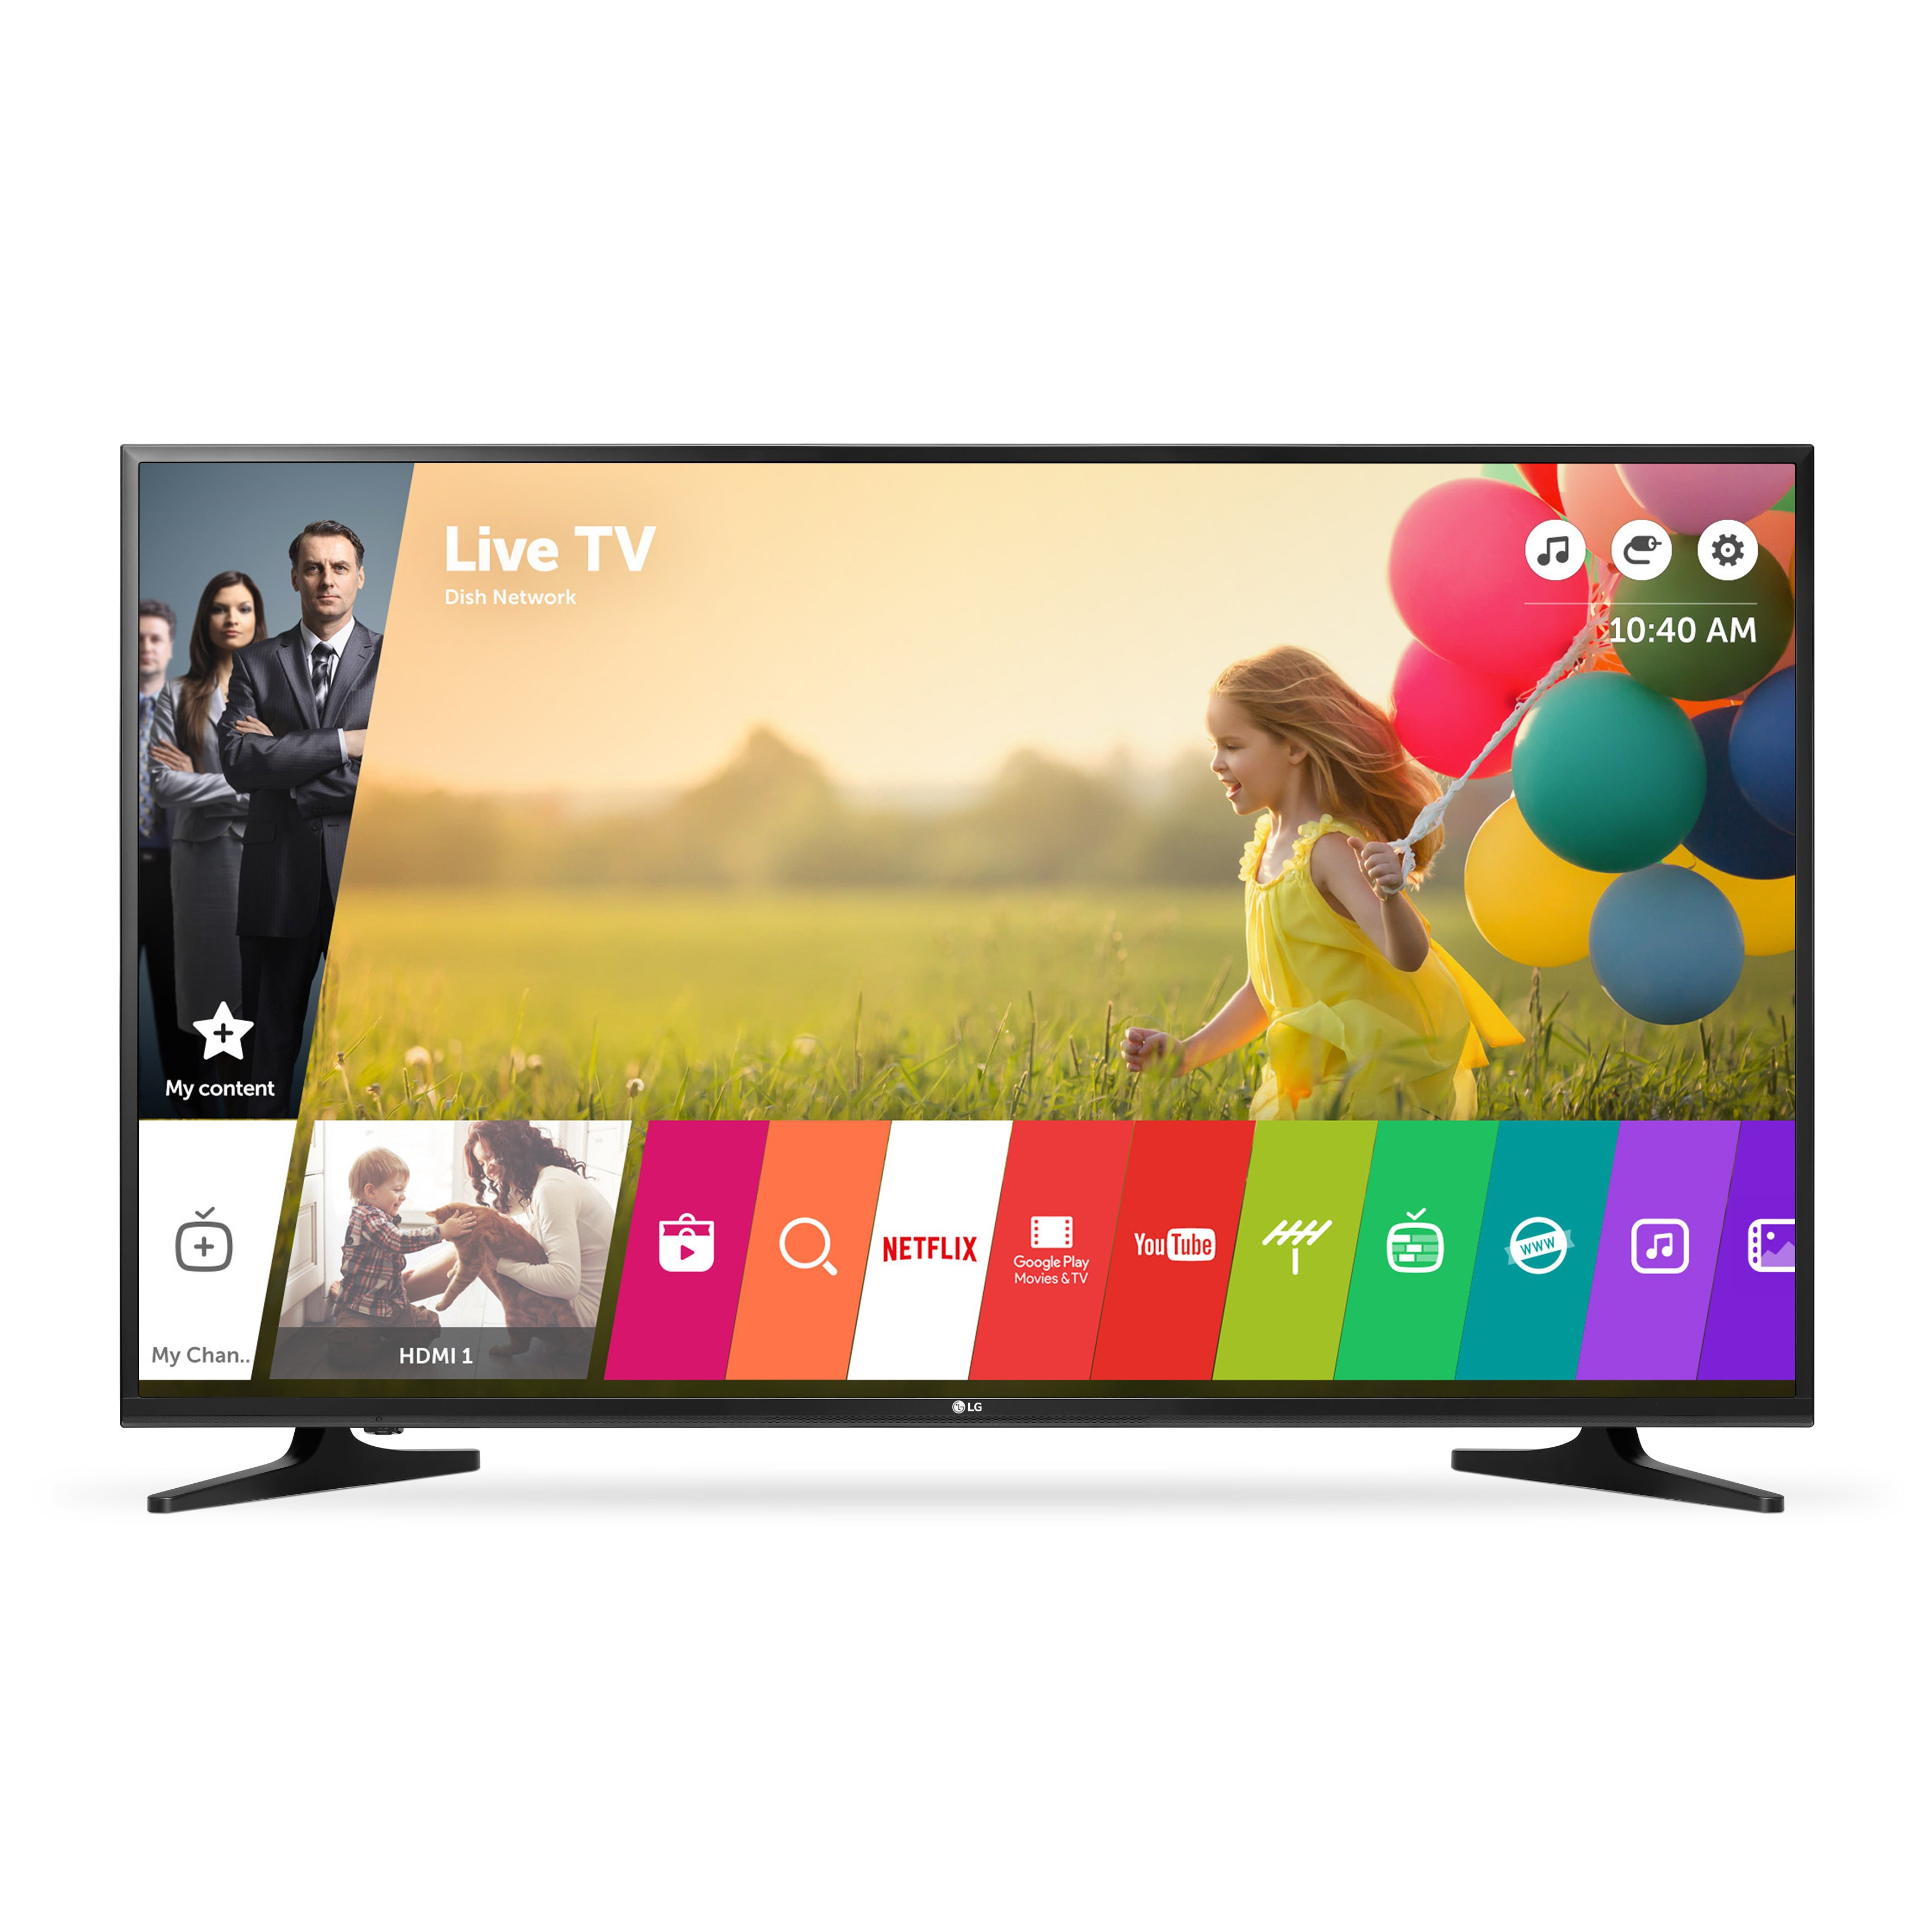 LG 50UH5500 50-inch Class 4K UHD LED Television With Smart TV